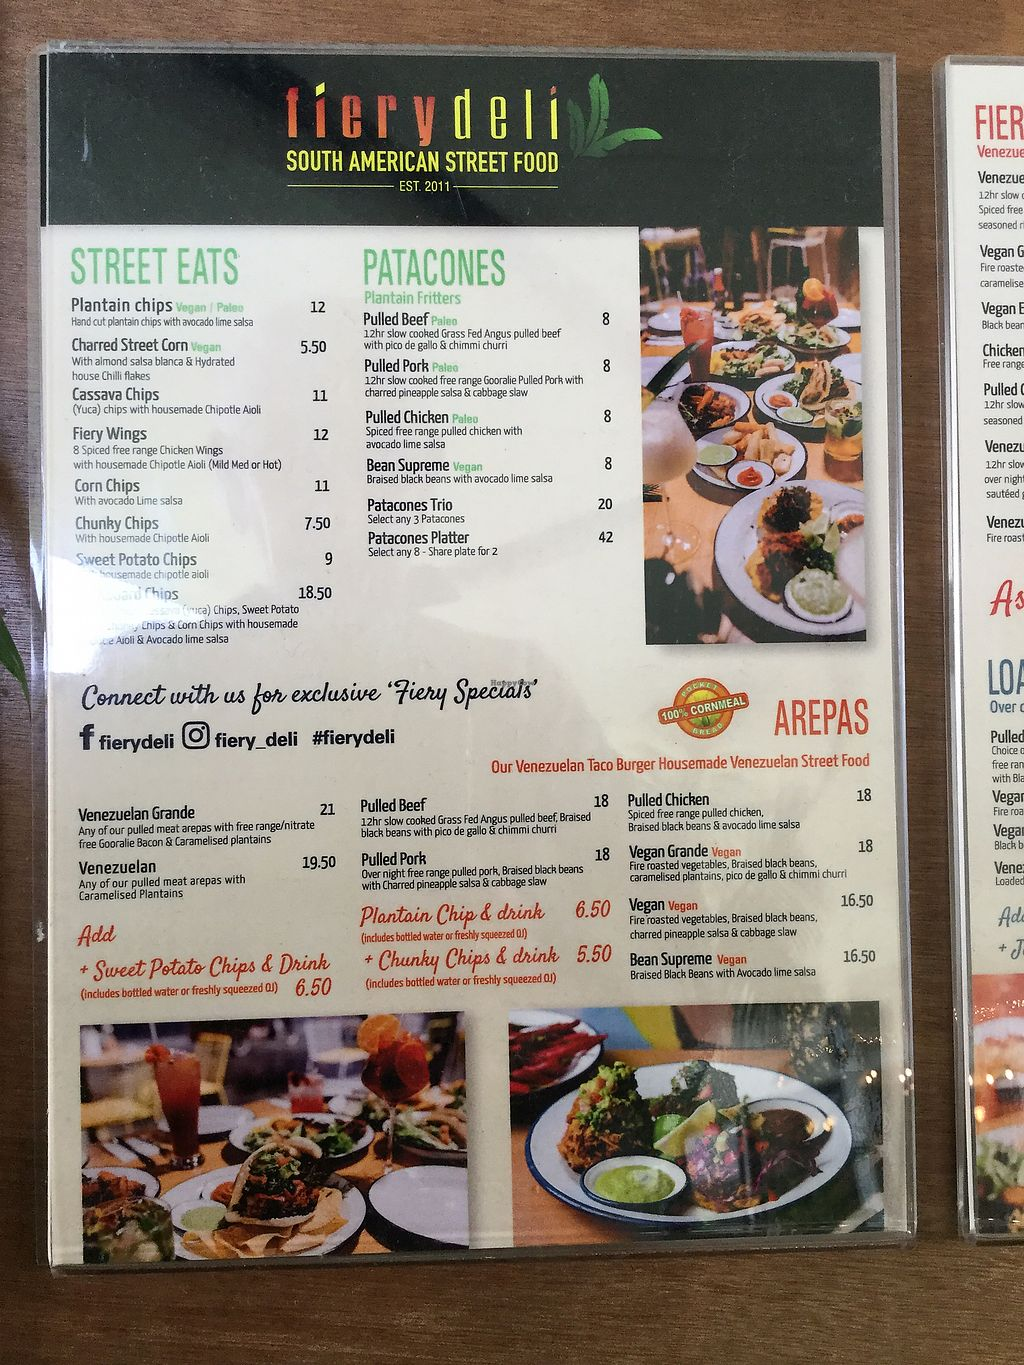 """Photo of Fiery Deli  by <a href=""""/members/profile/Mike%20Munsie"""">Mike Munsie</a> <br/>menu 1 <br/> March 19, 2018  - <a href='/contact/abuse/image/107587/372759'>Report</a>"""